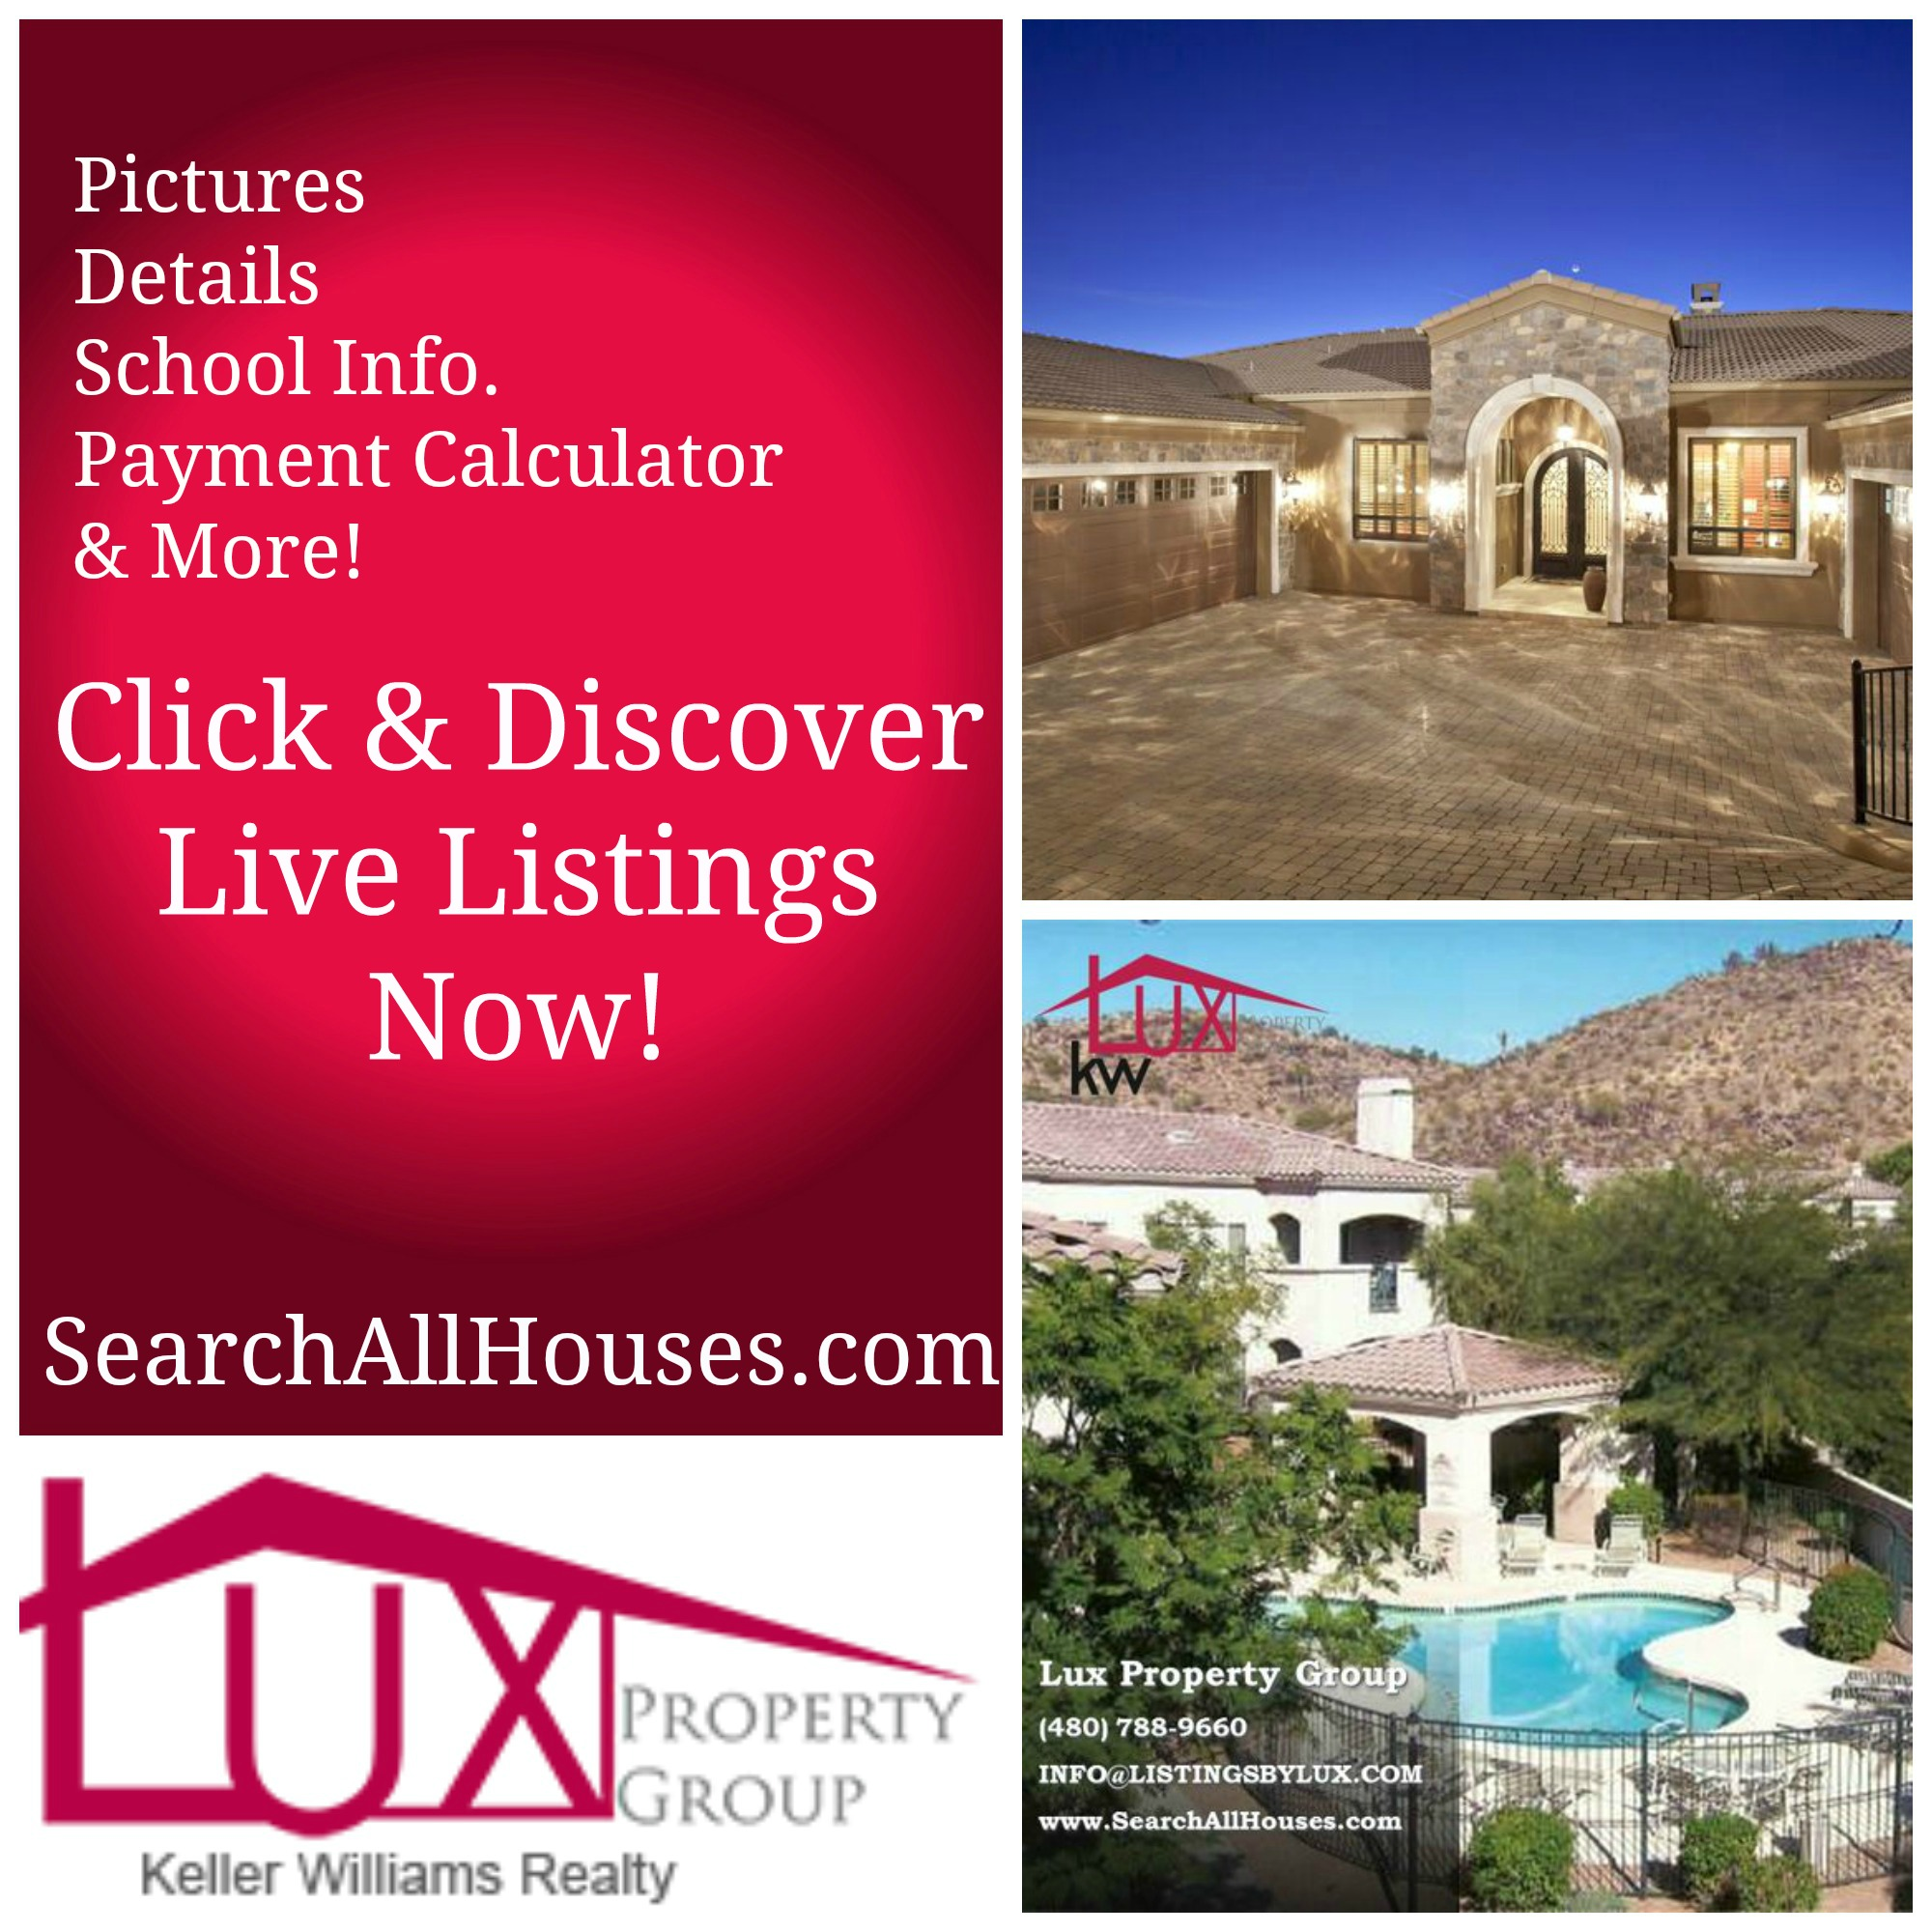 View Homes for Sale By Zip Code